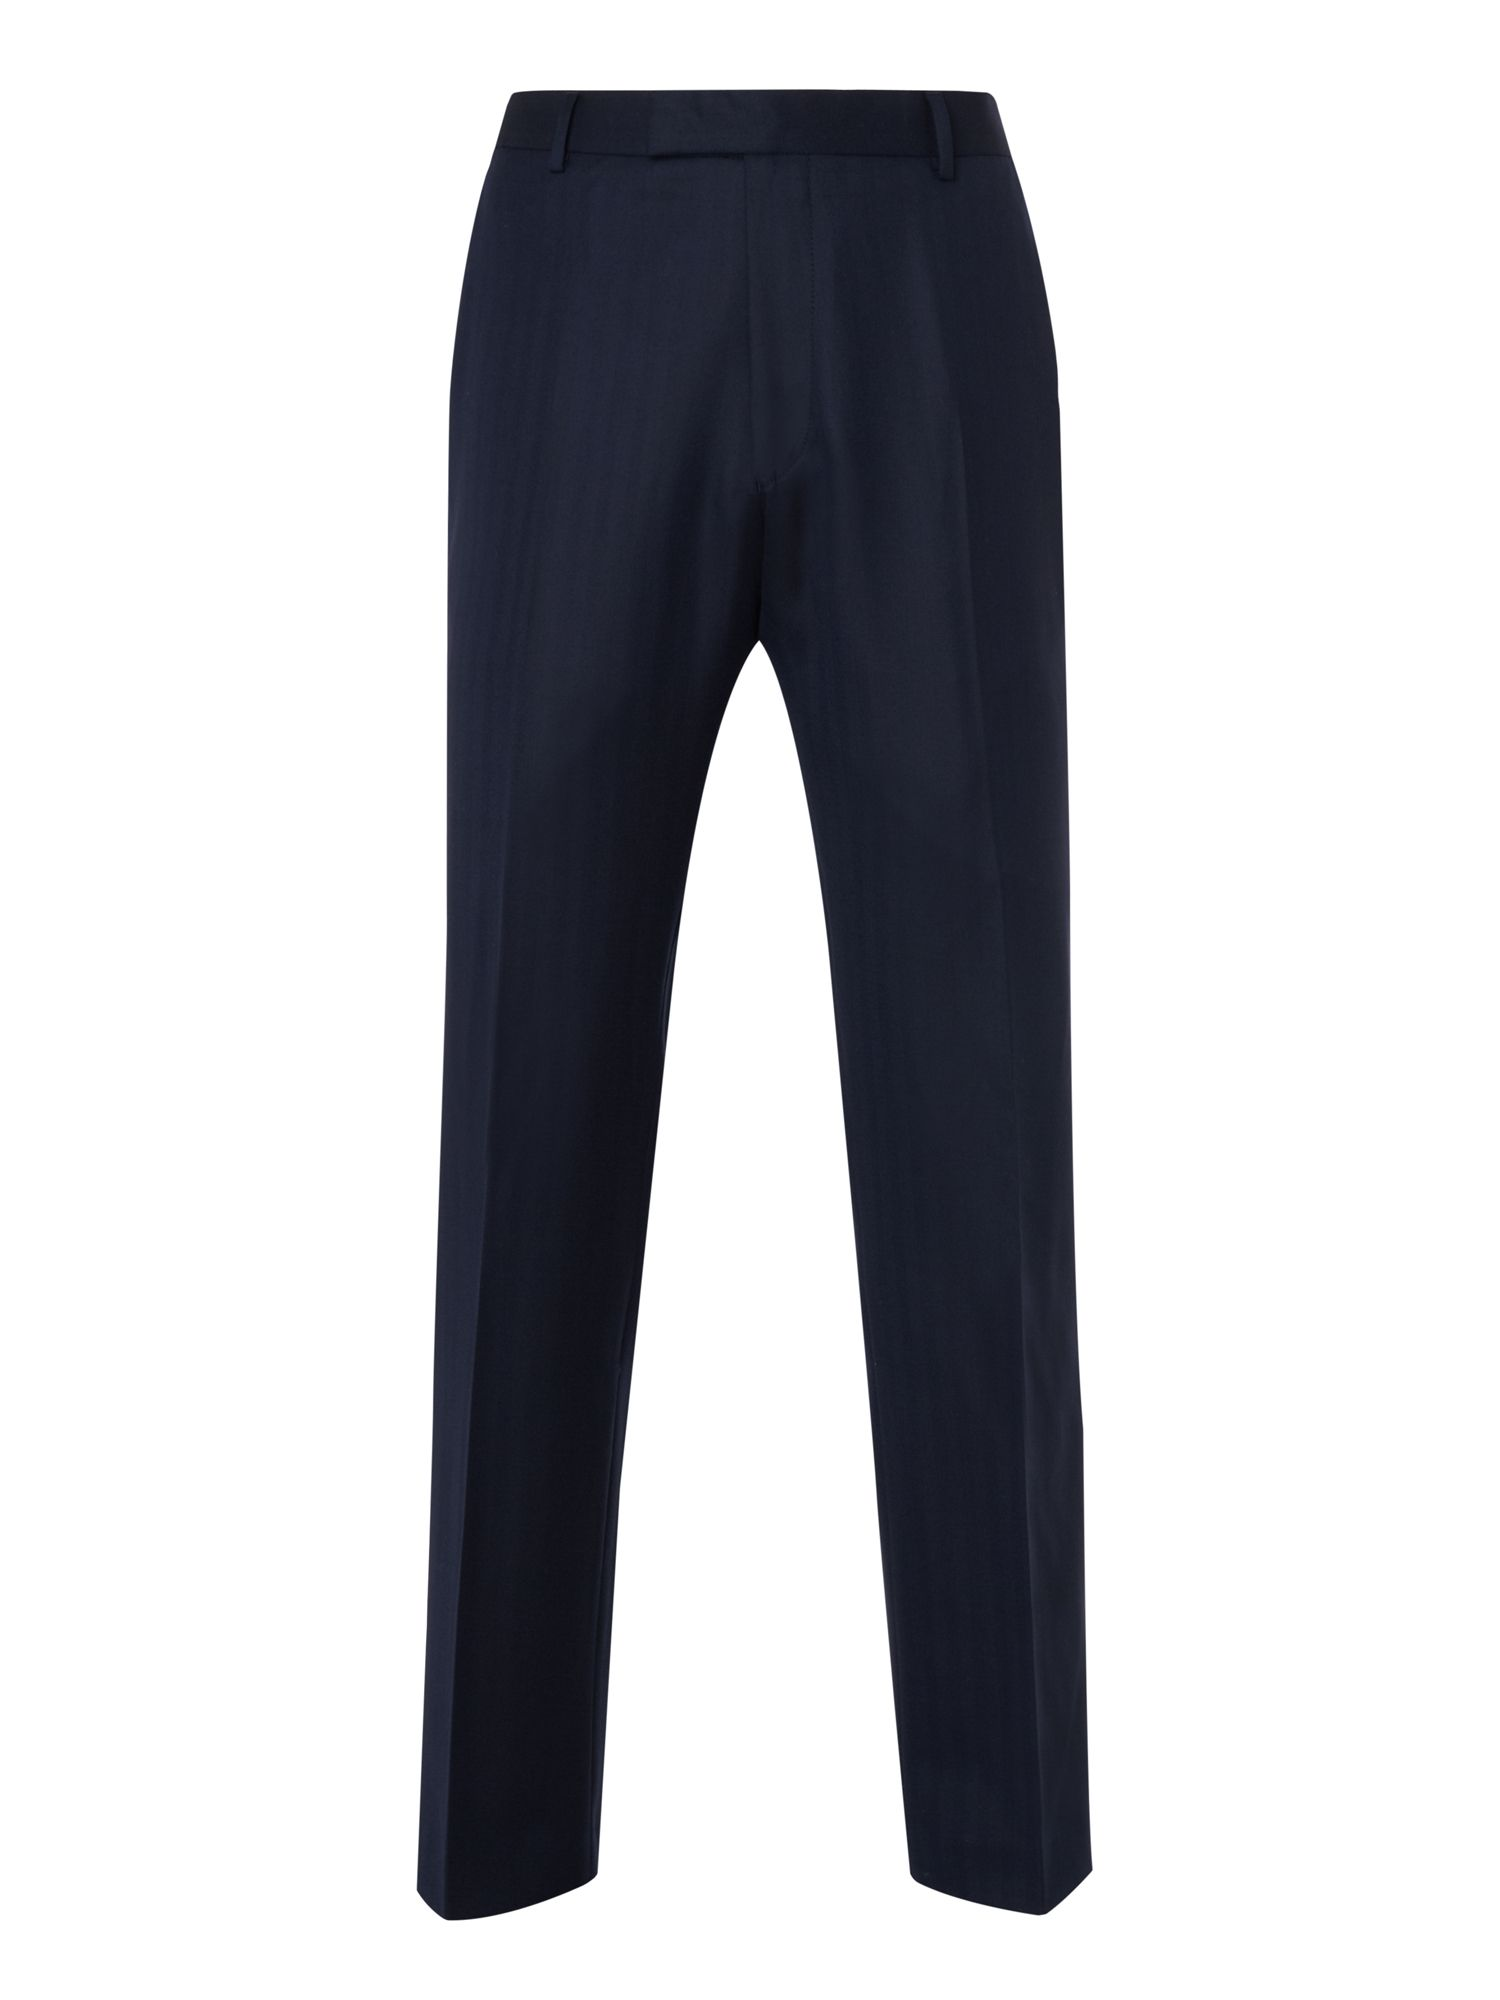 Herringbone 160s trousers